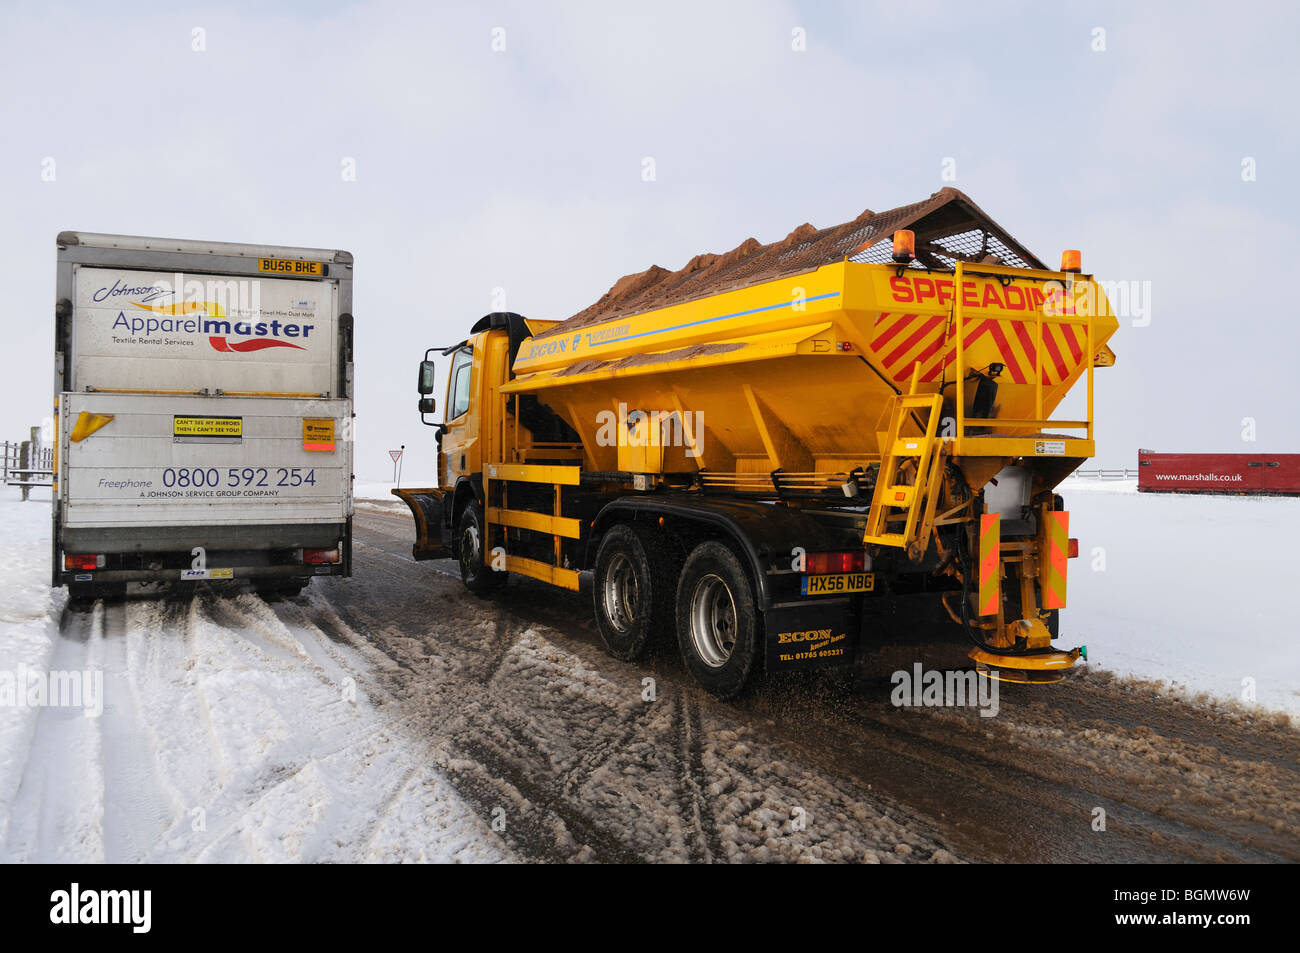 a gritter wagon on bodmin moor in cornwall, uk - Stock Image